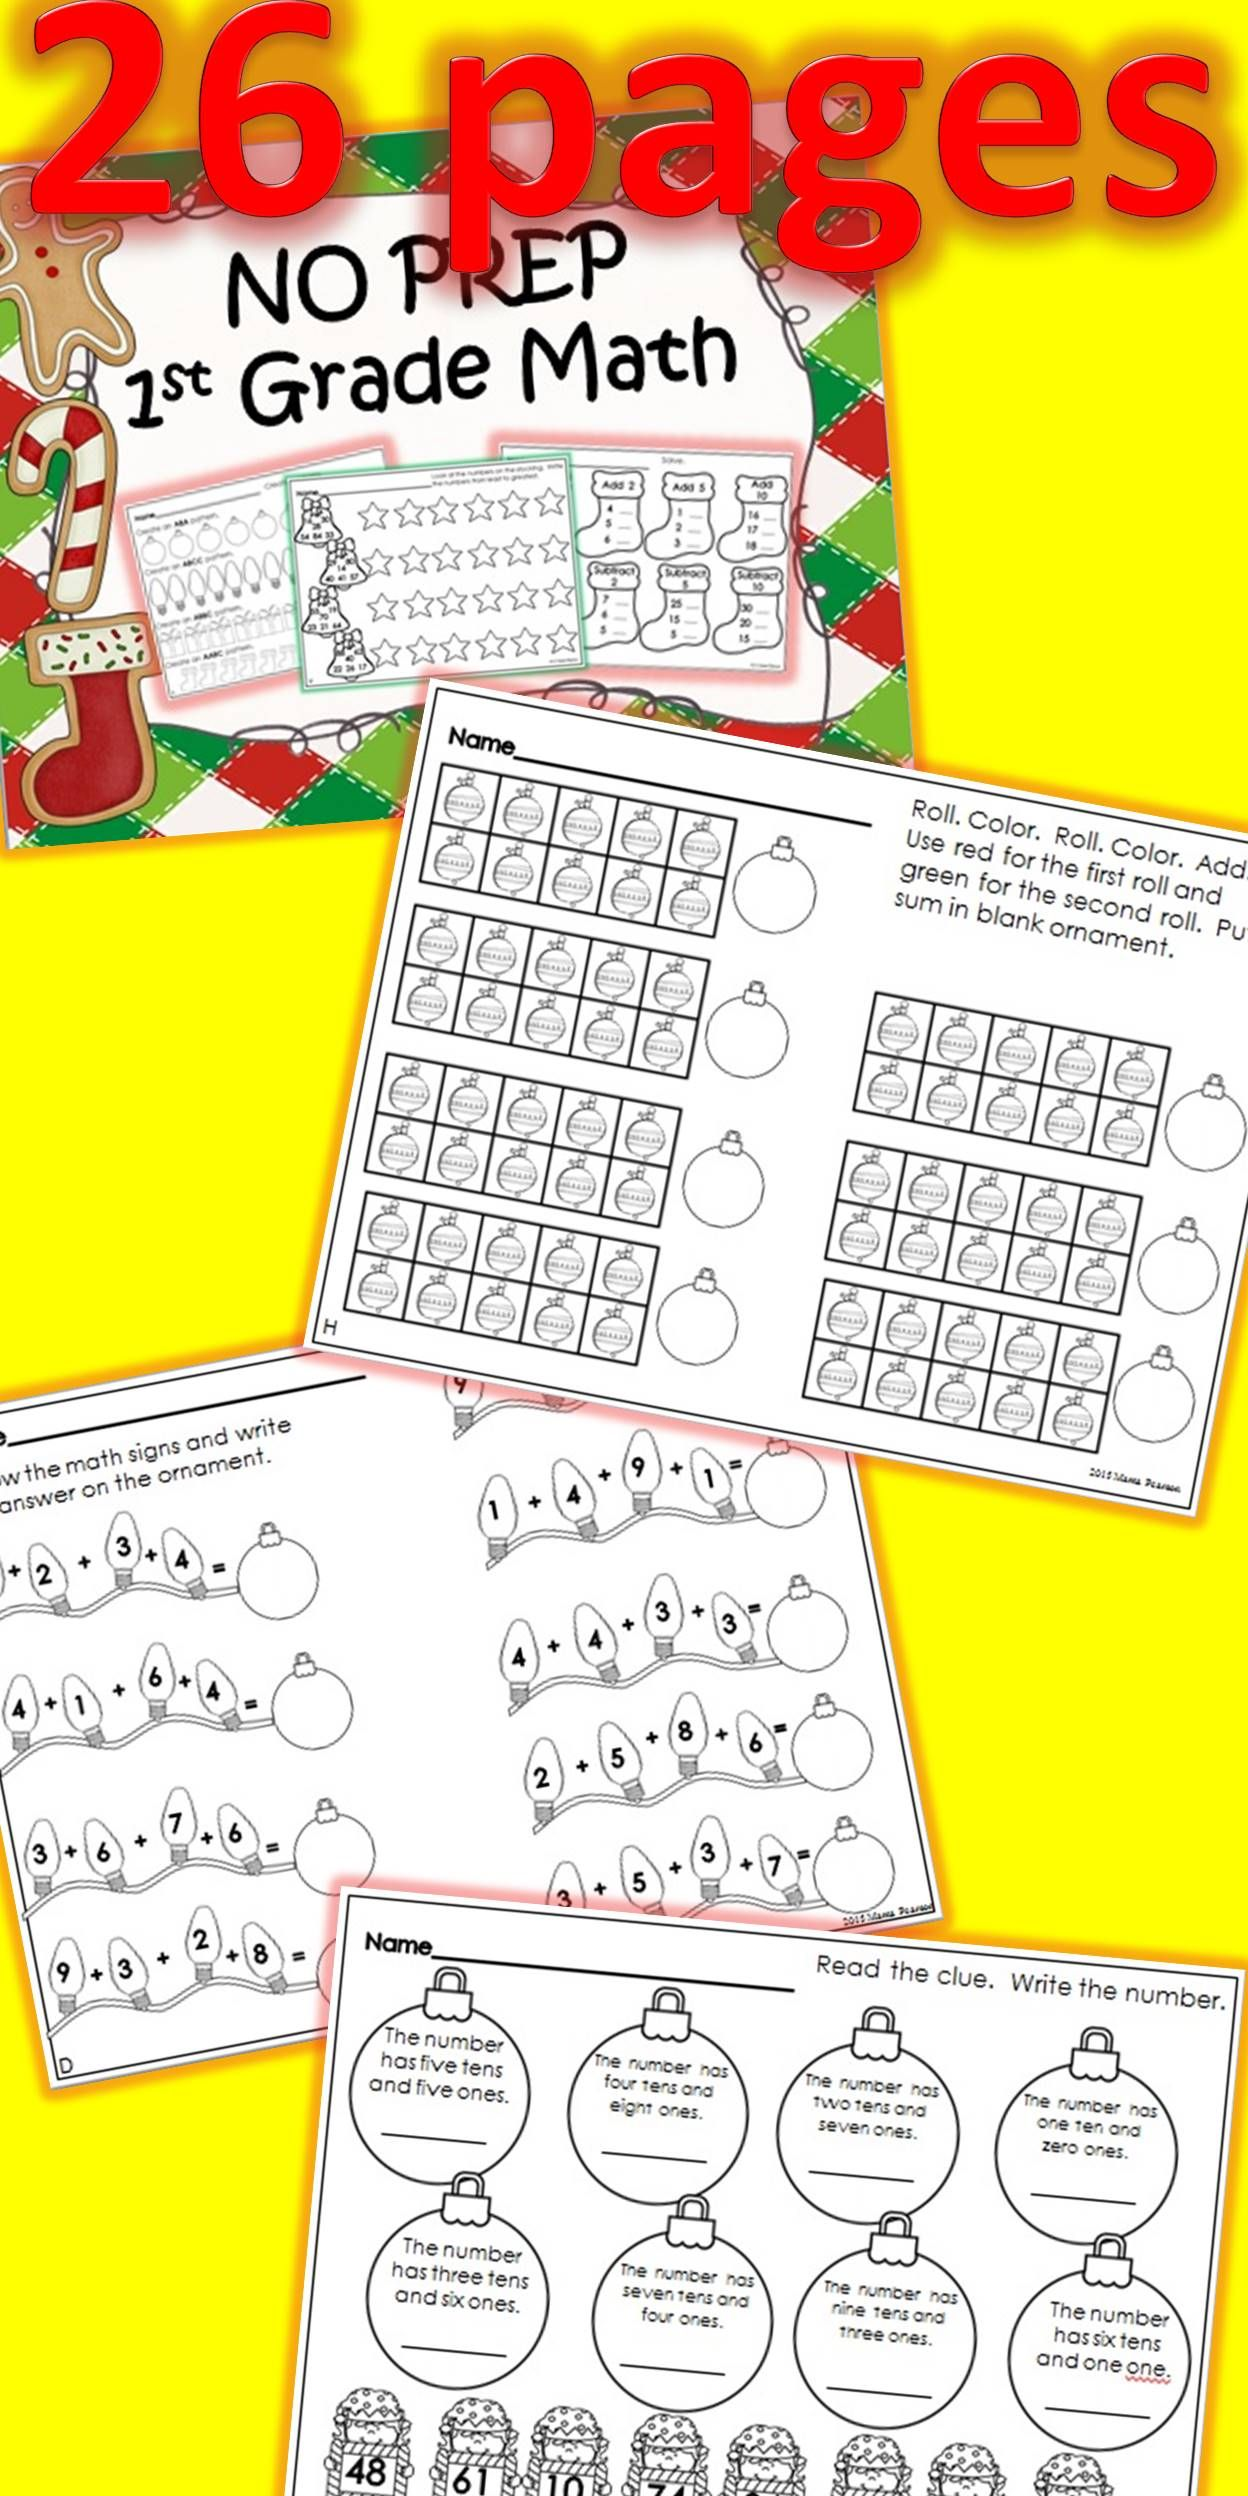 26 NO PREP pages are ready to go to help your students review some math skills during the month of December.   With this purchase your students will review:  even/odd ordering numbers adding/subtracting 10 adding to 10 efficient equations tally marks place value missing addends reading number words patterns money graphing greater than/less than fact families ordinal position counting time $